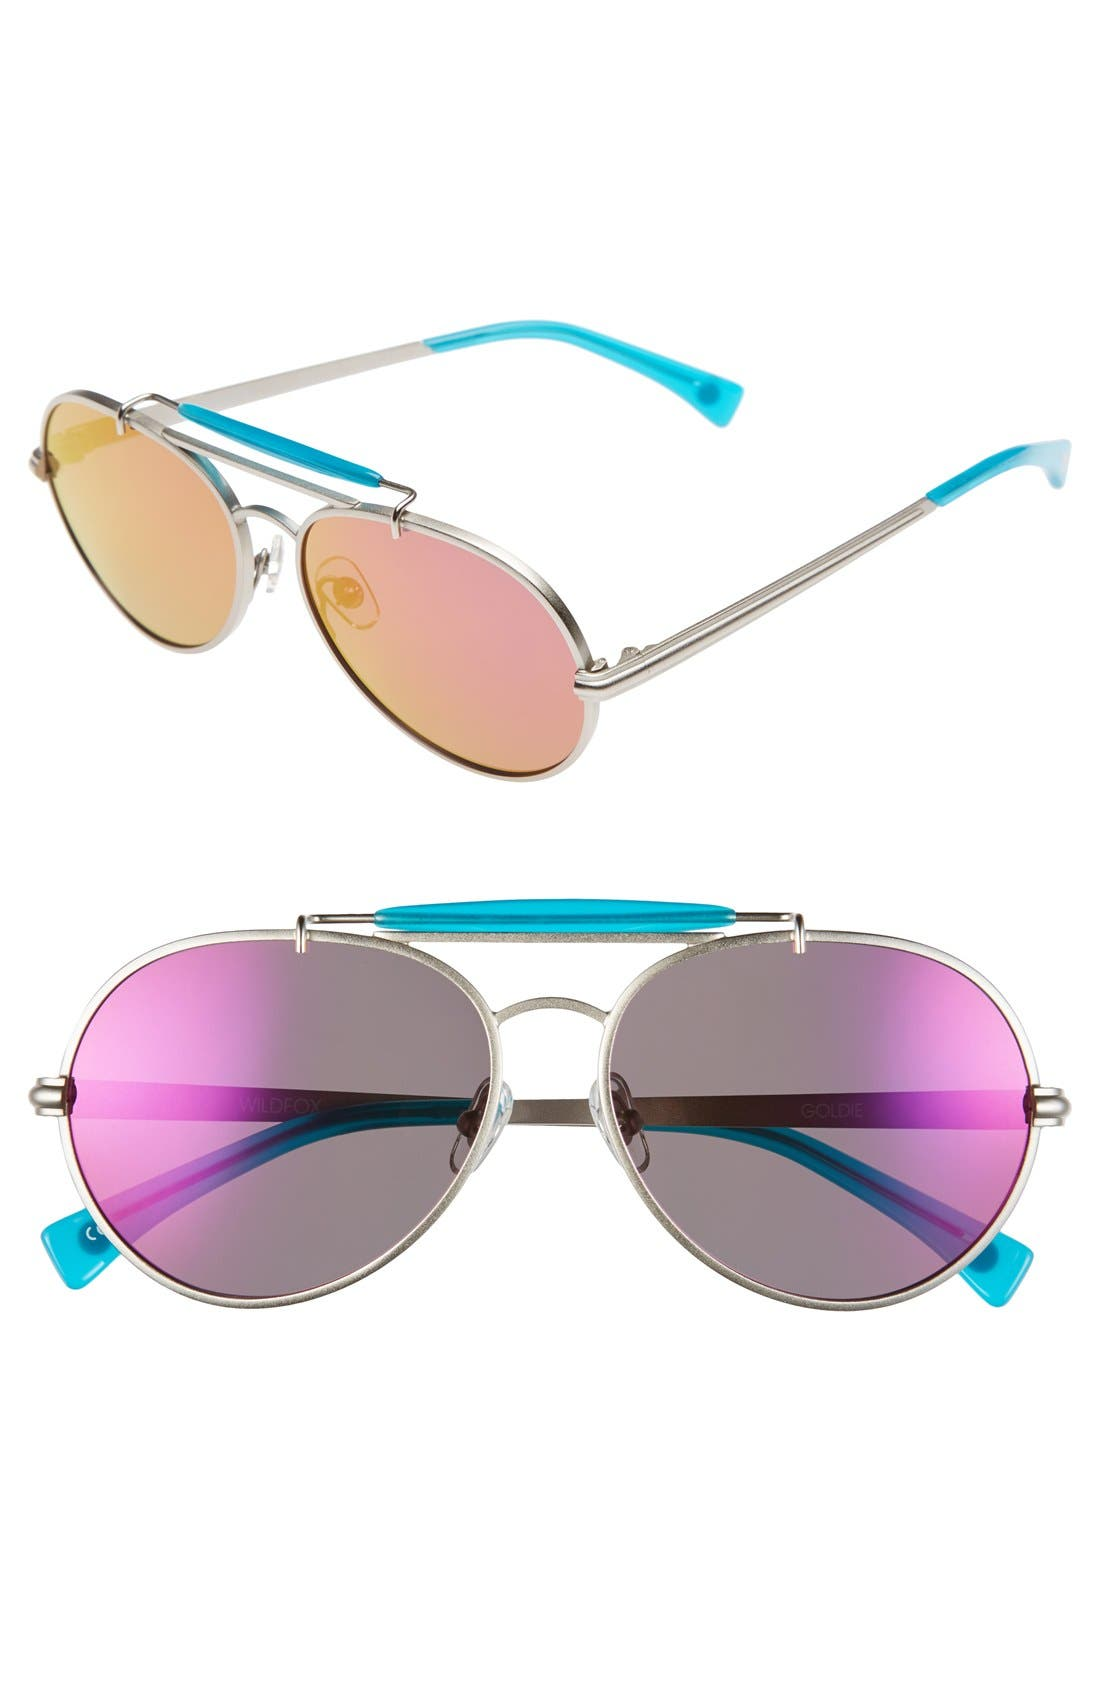 Alternate Image 1 Selected - Wildfox 'Goldie Deluxe' 55mm Mirrored Aviator Sunglasses